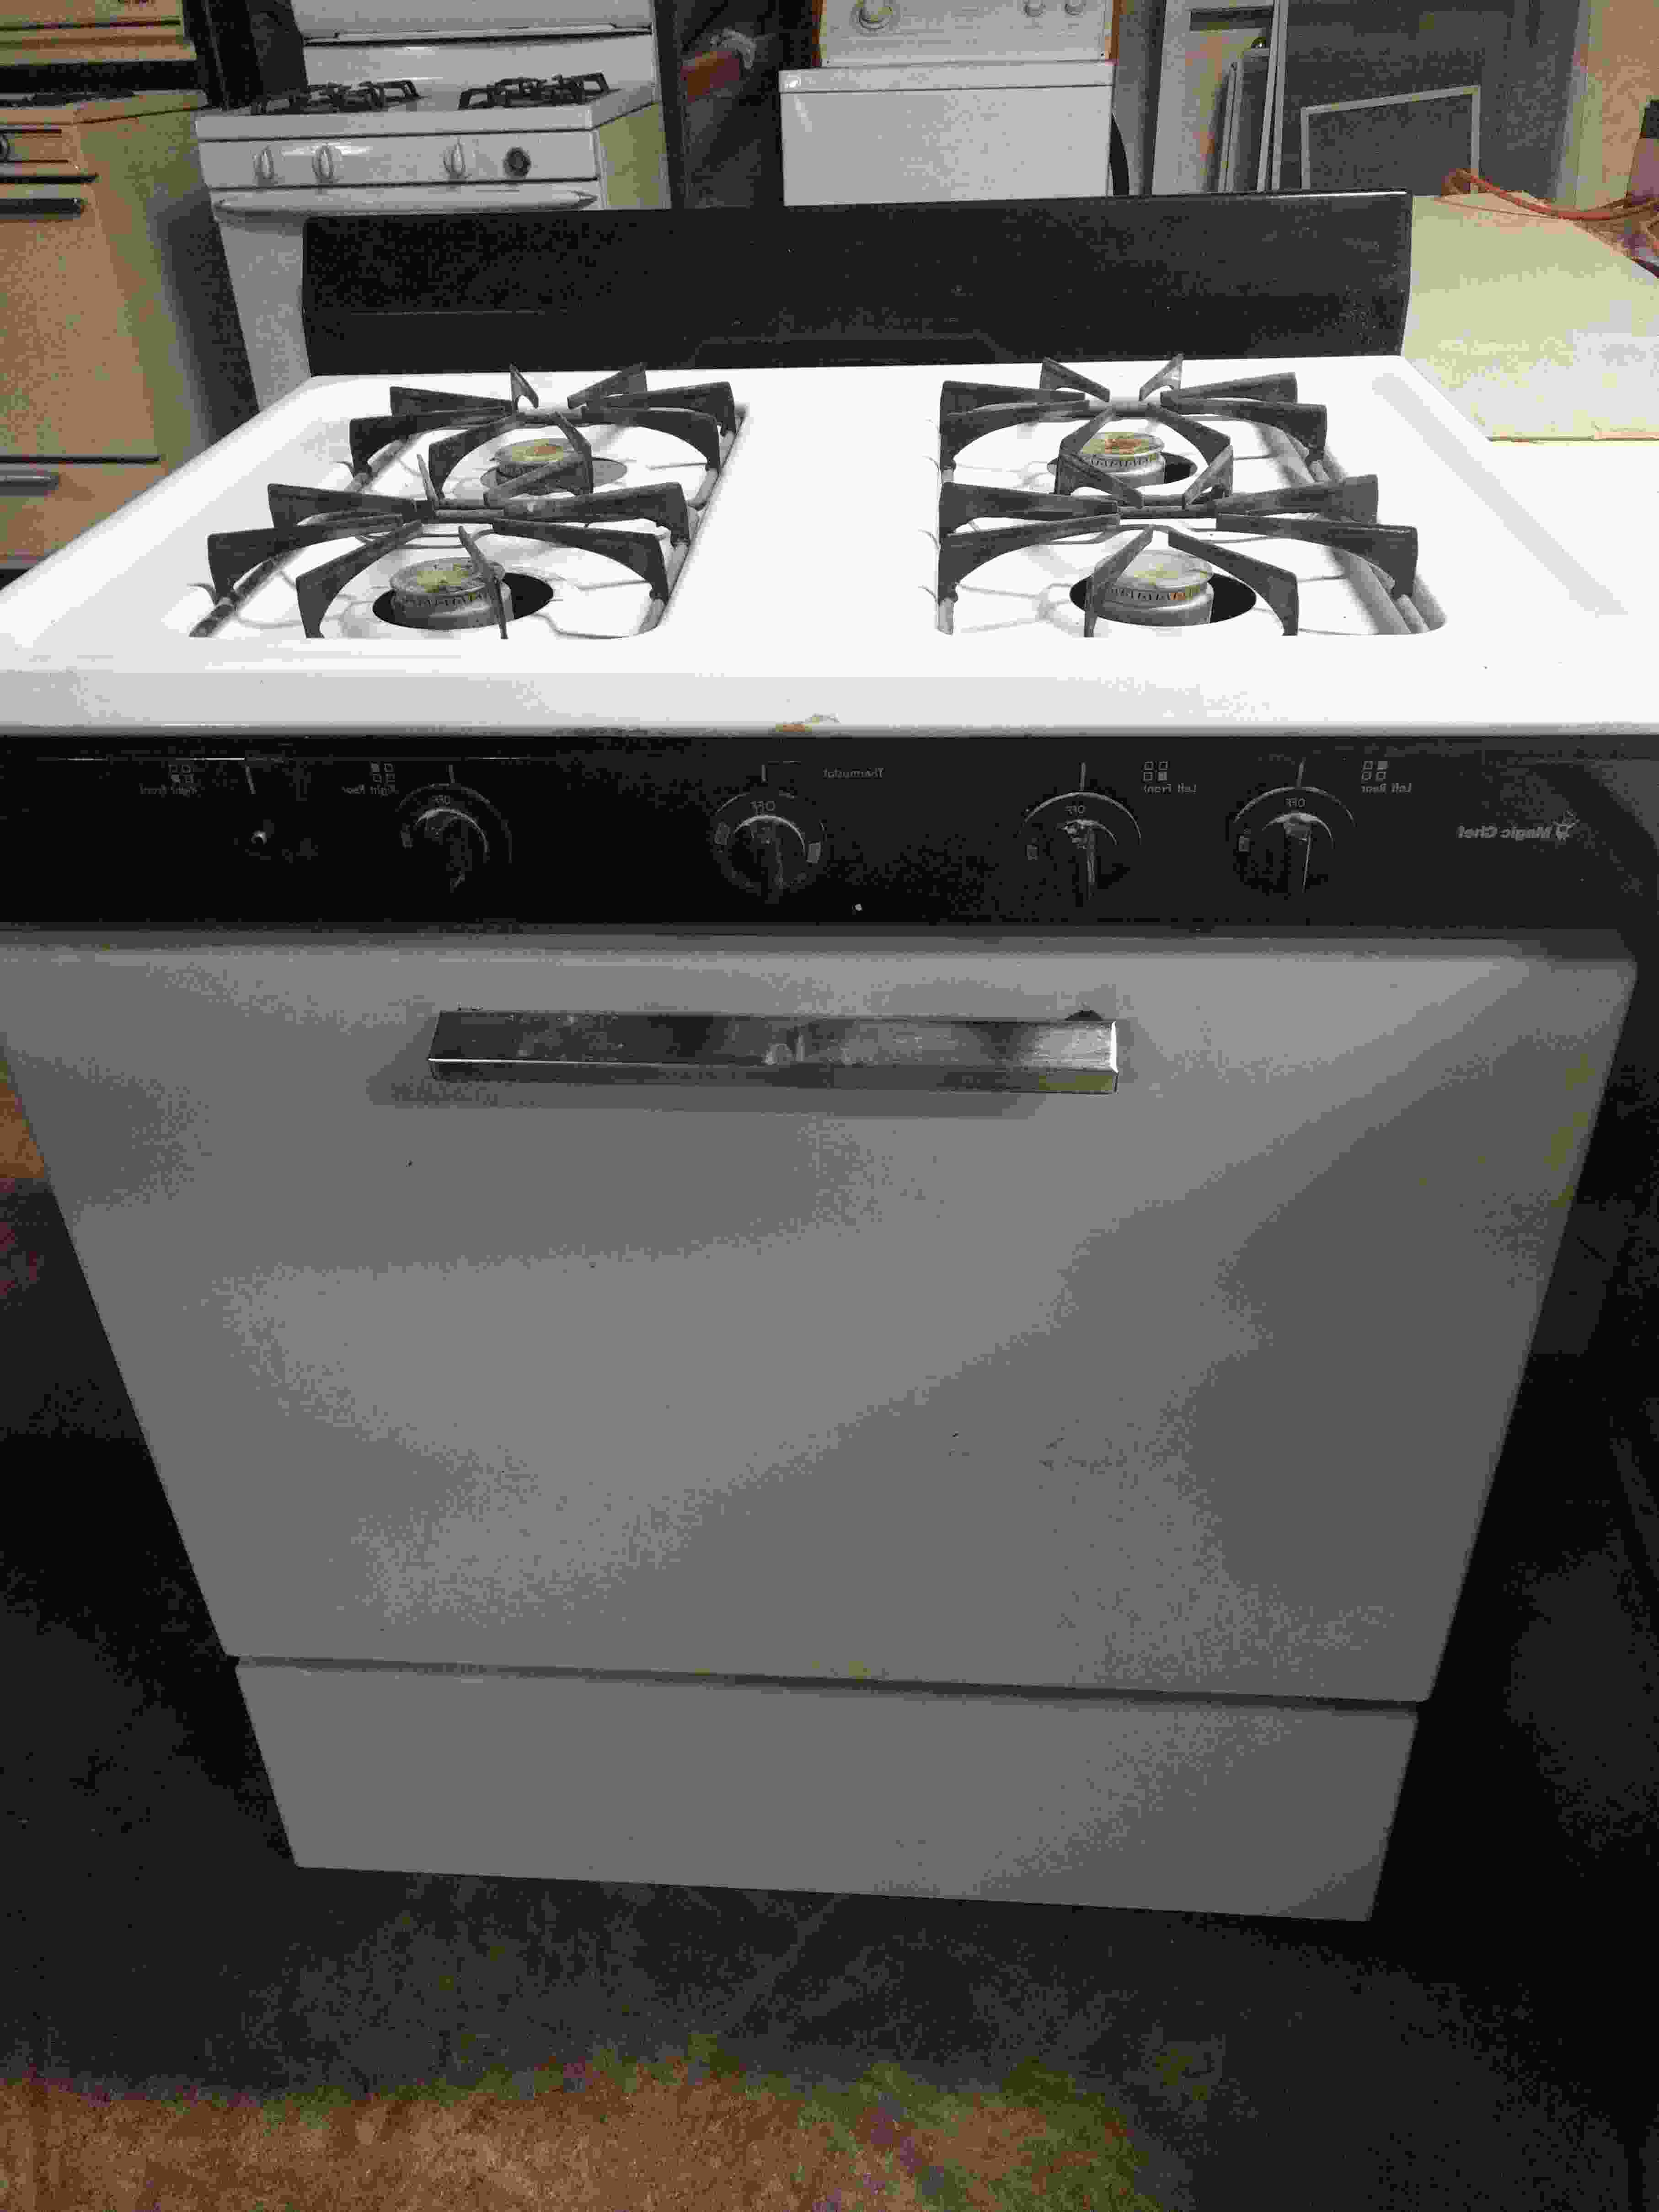 MAYITOP Burner Head Assembly Oven Gas Range Stove for Maytag Magic Chef...